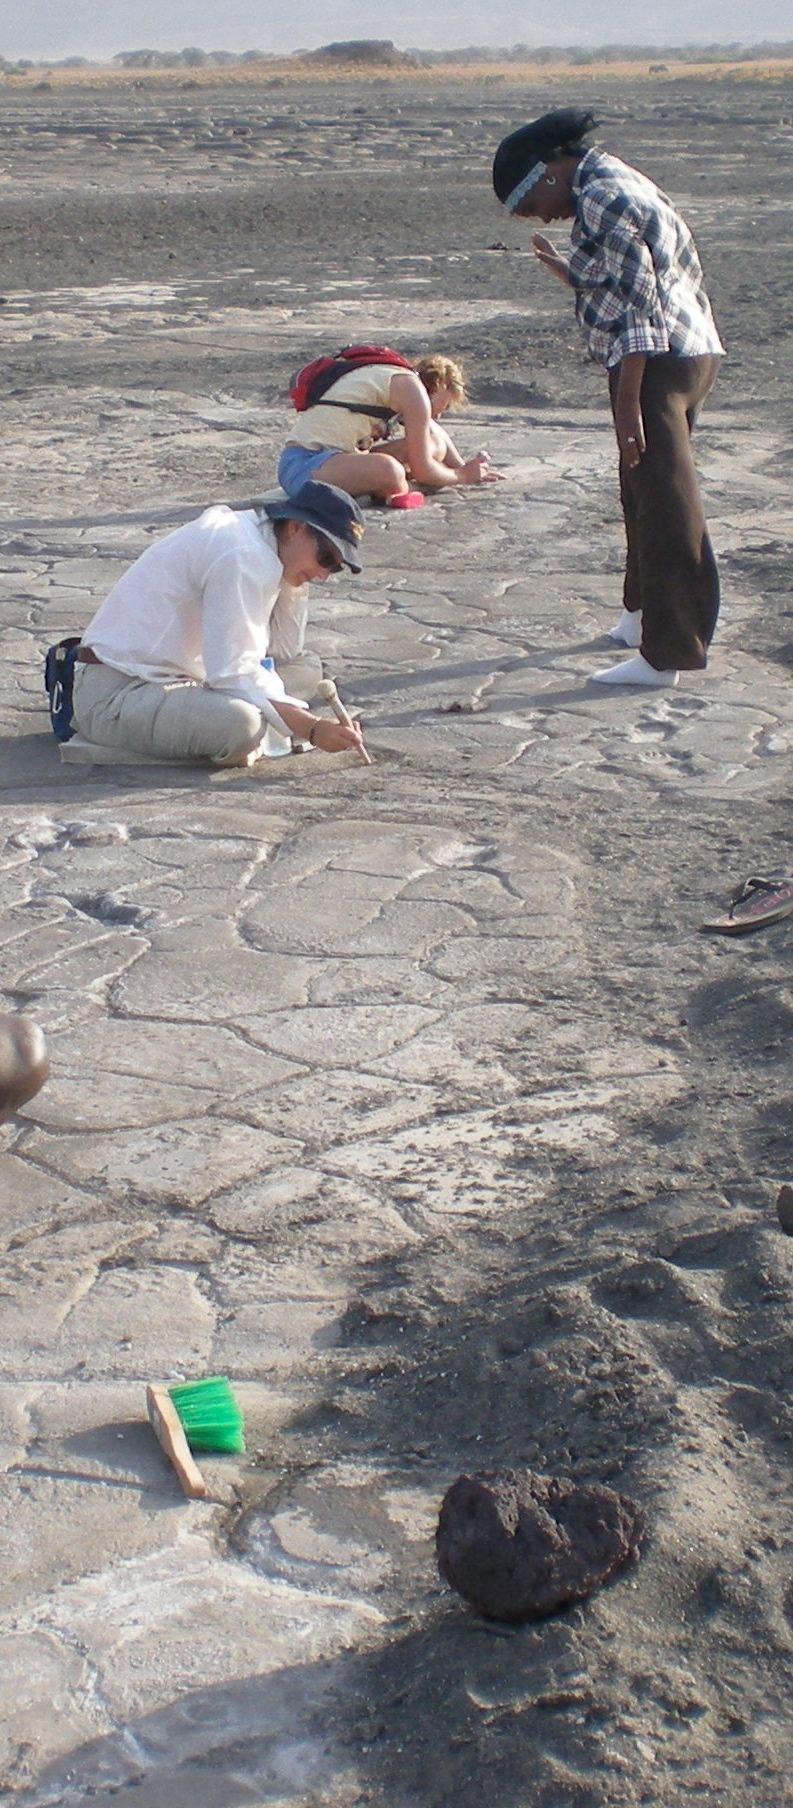 Appalachian geologist investigates Homo sapiens' oldest known trackways